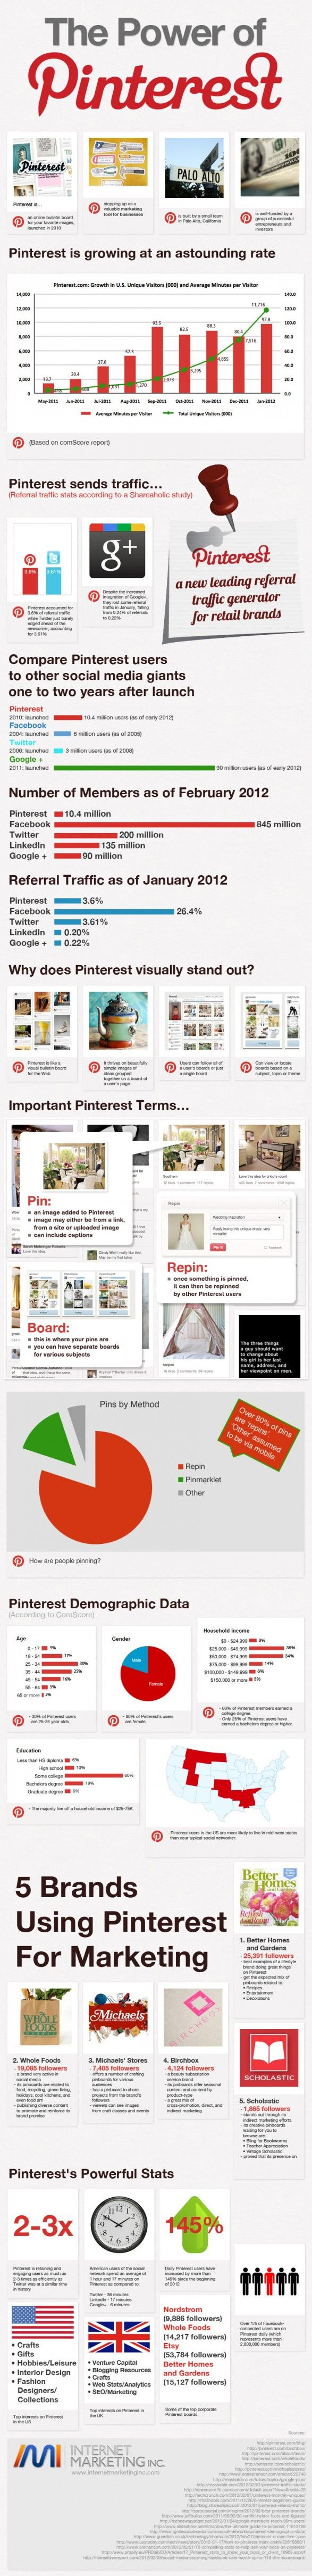 Pinterest vs. Other Social Media Giants [Infographic] http://socialtimes.com/pinterest-vs-other-social-media-giants-infographic_b91577